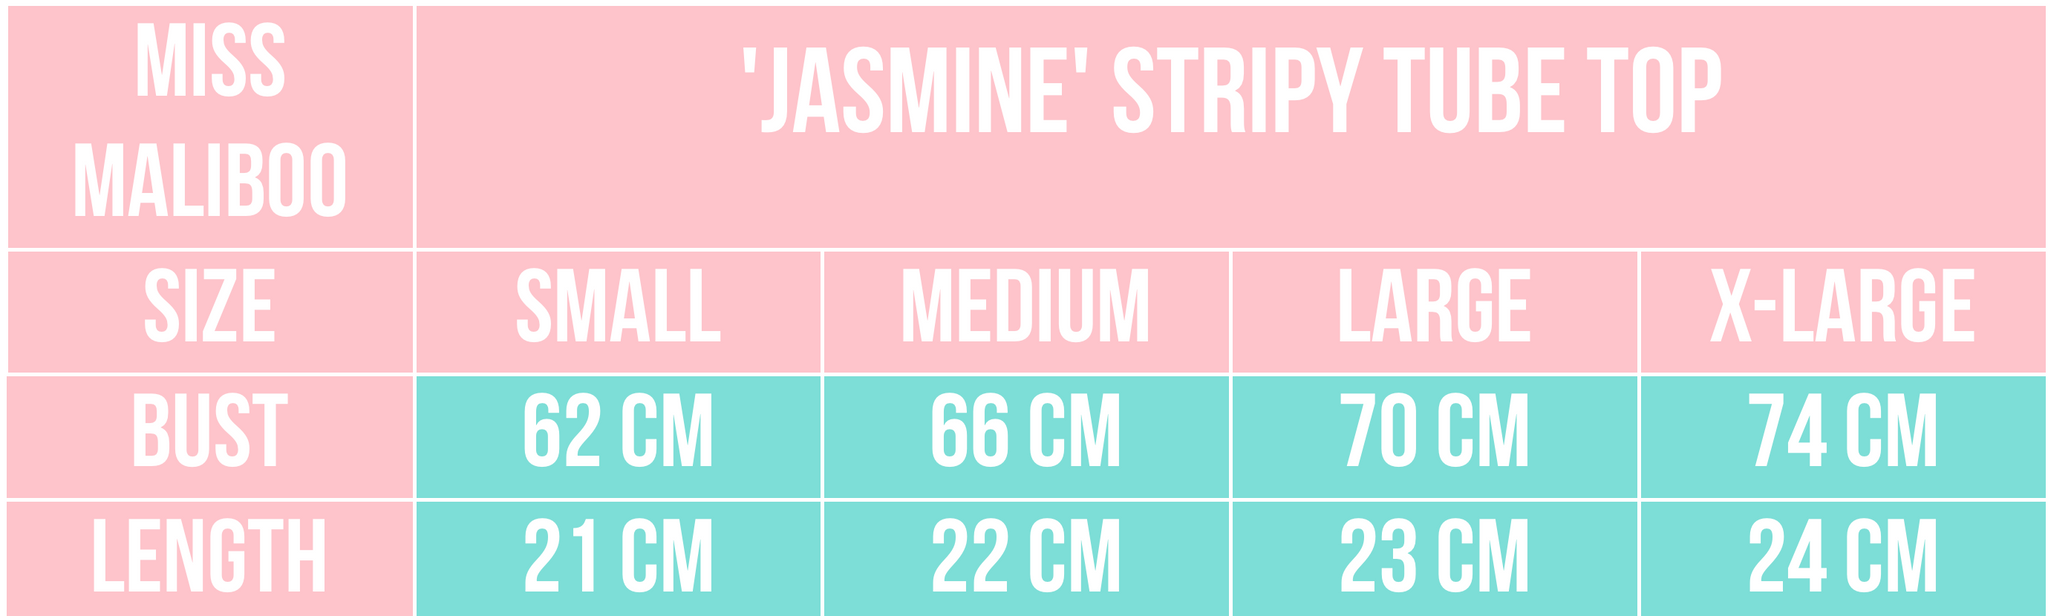 'JASMINE' STRIPY TUBE TOP MISS MALIBOO